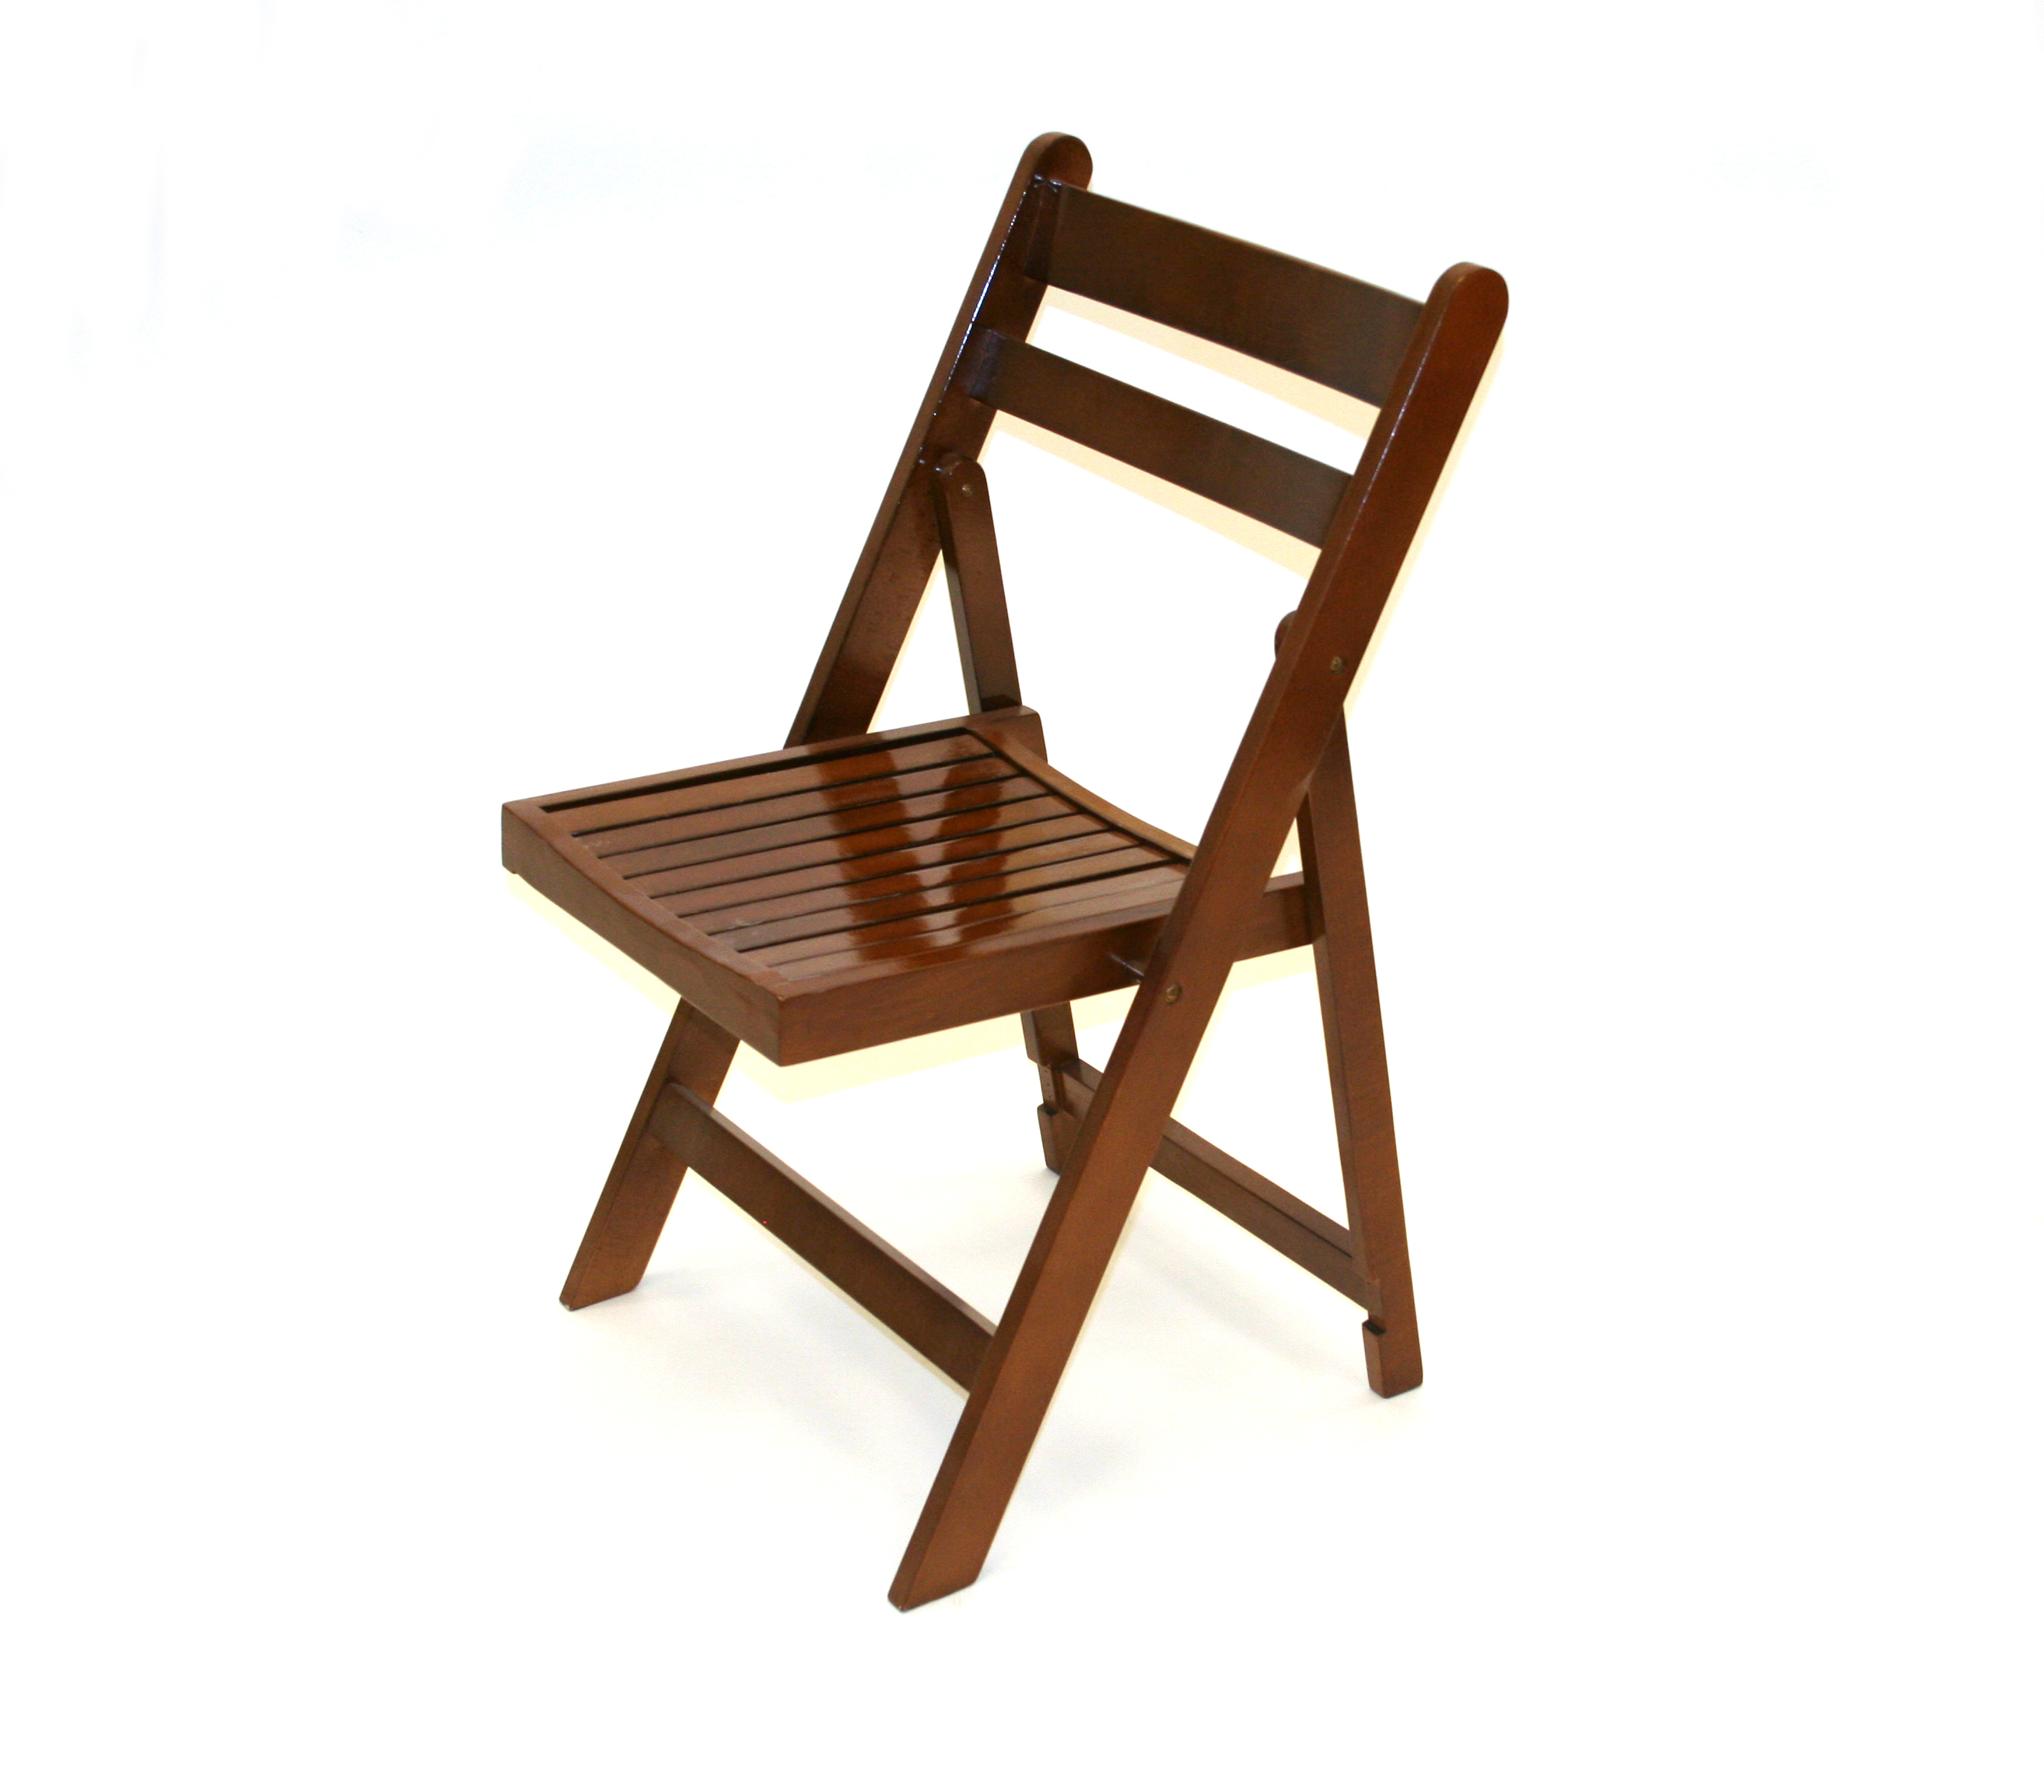 chair stools wooden upholstered chairs dining brown folding hire events weddings be